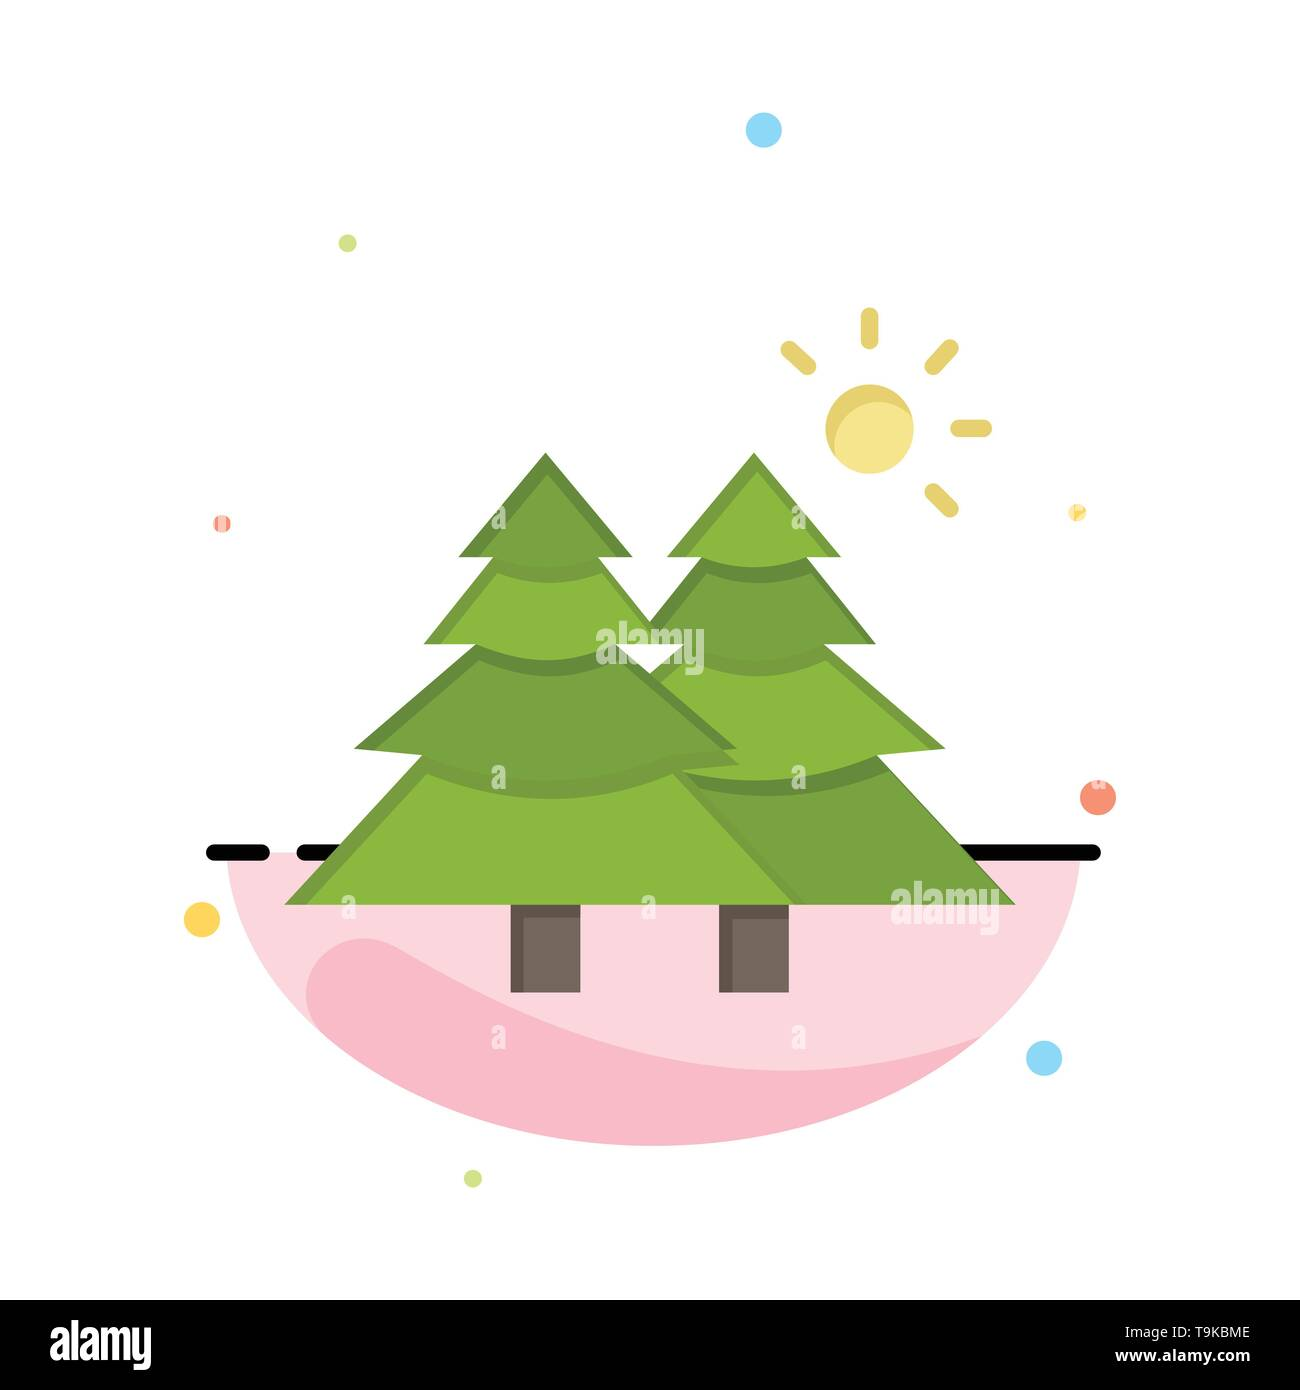 Fir, Forest, Nature, Trees Abstract Flat Color Icon Template - Stock Image